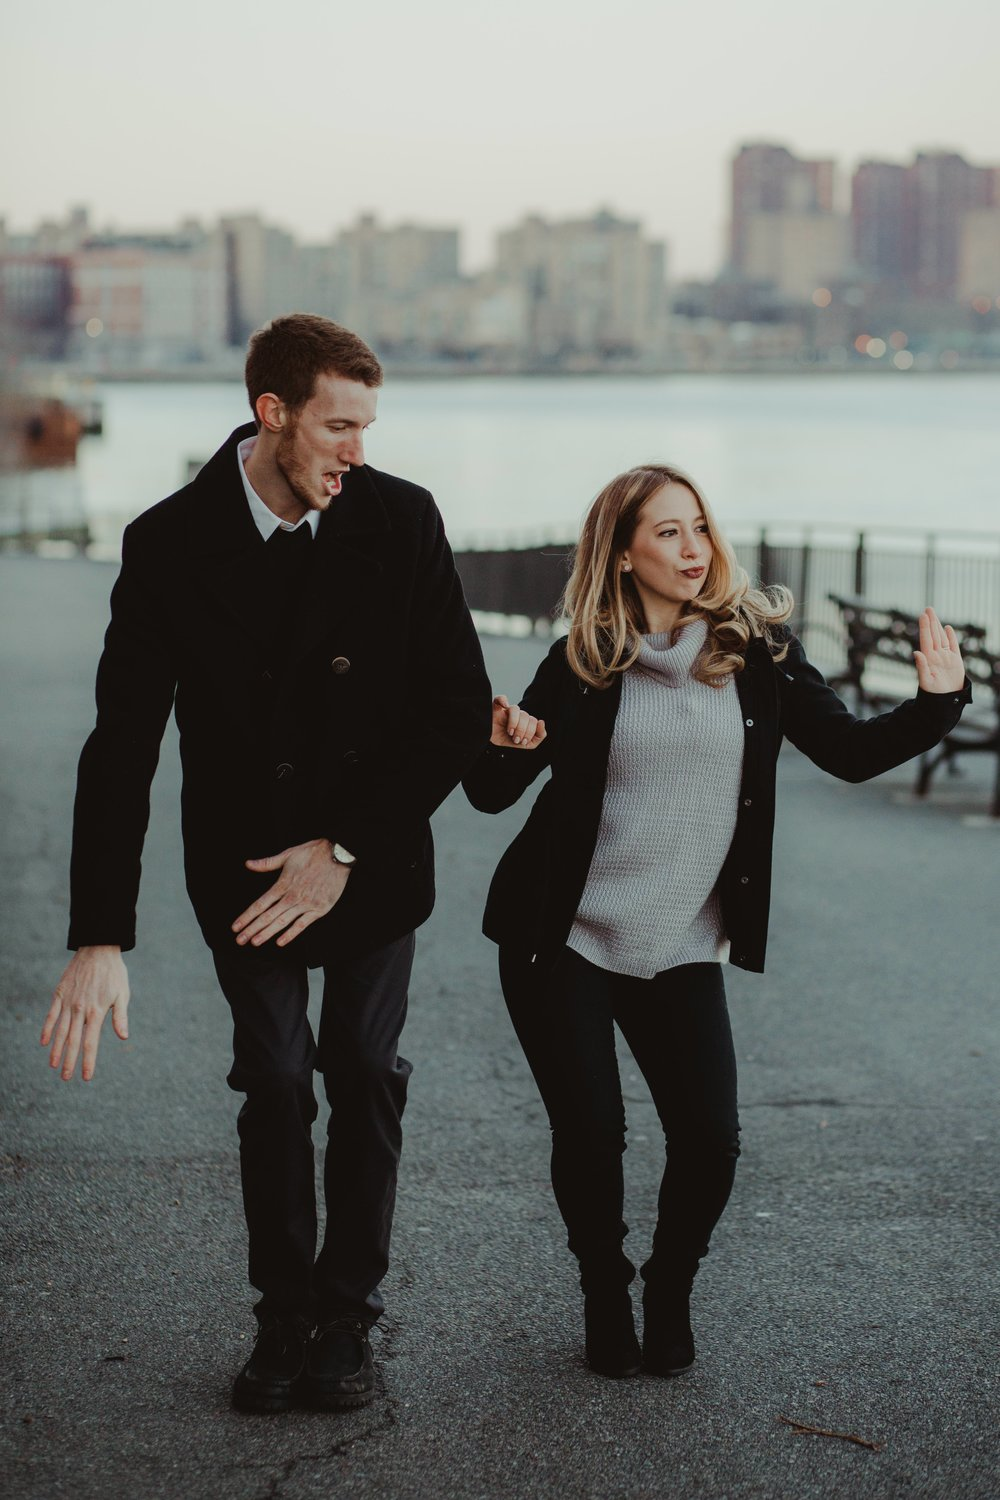 Wilde-Scout-Photo-Co-Upper-East-Side-Engagement-Photographer-NYC-68